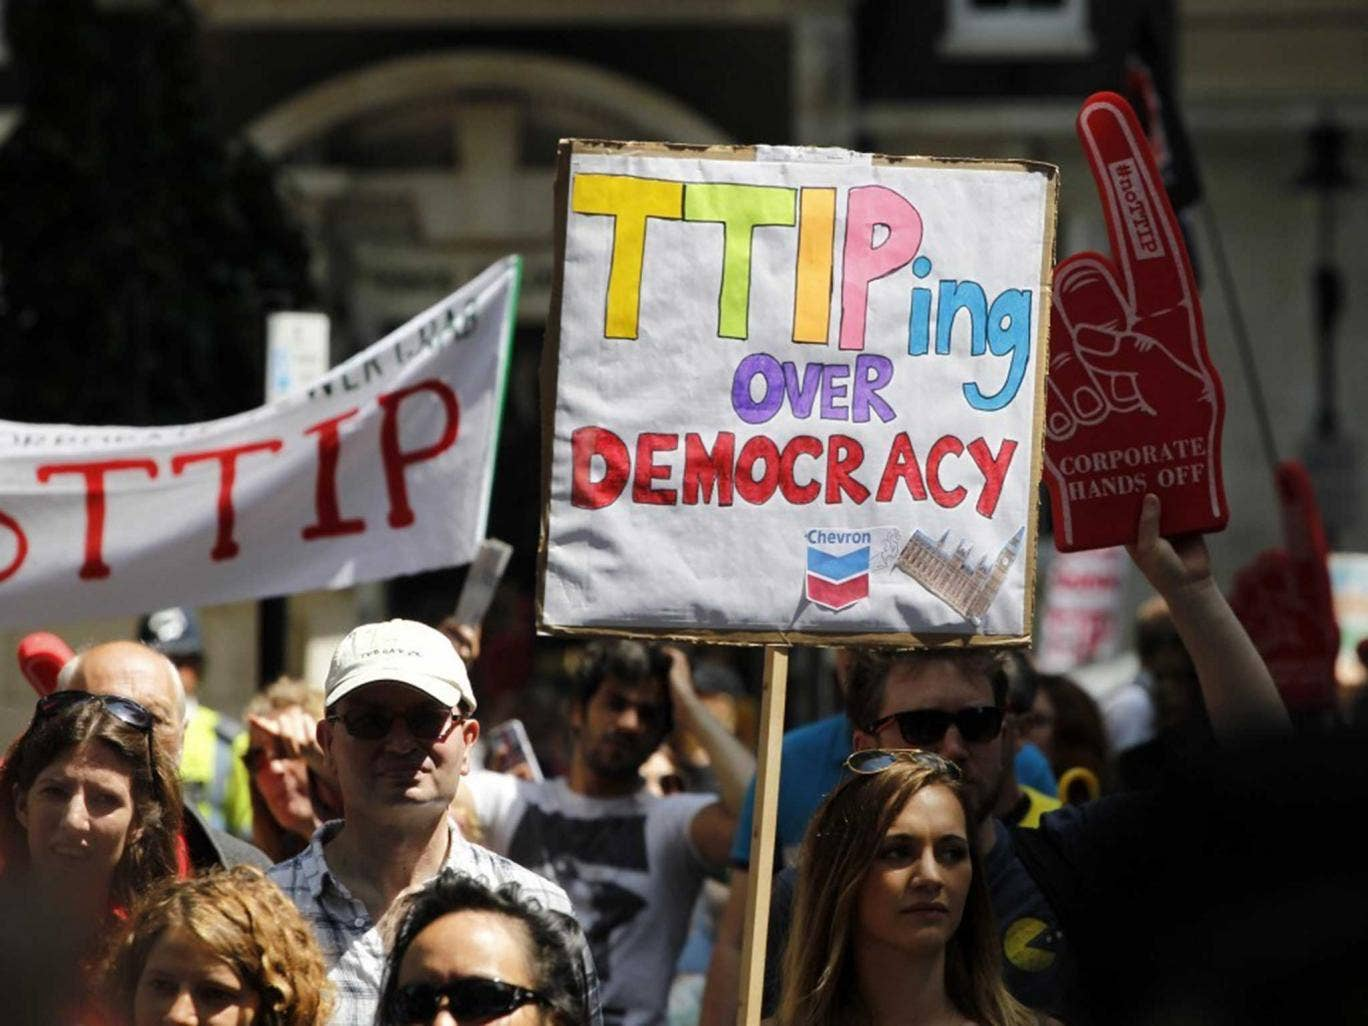 Marching through London yesterday against the 'secret' EU/US deal which is backed by all three main political parties